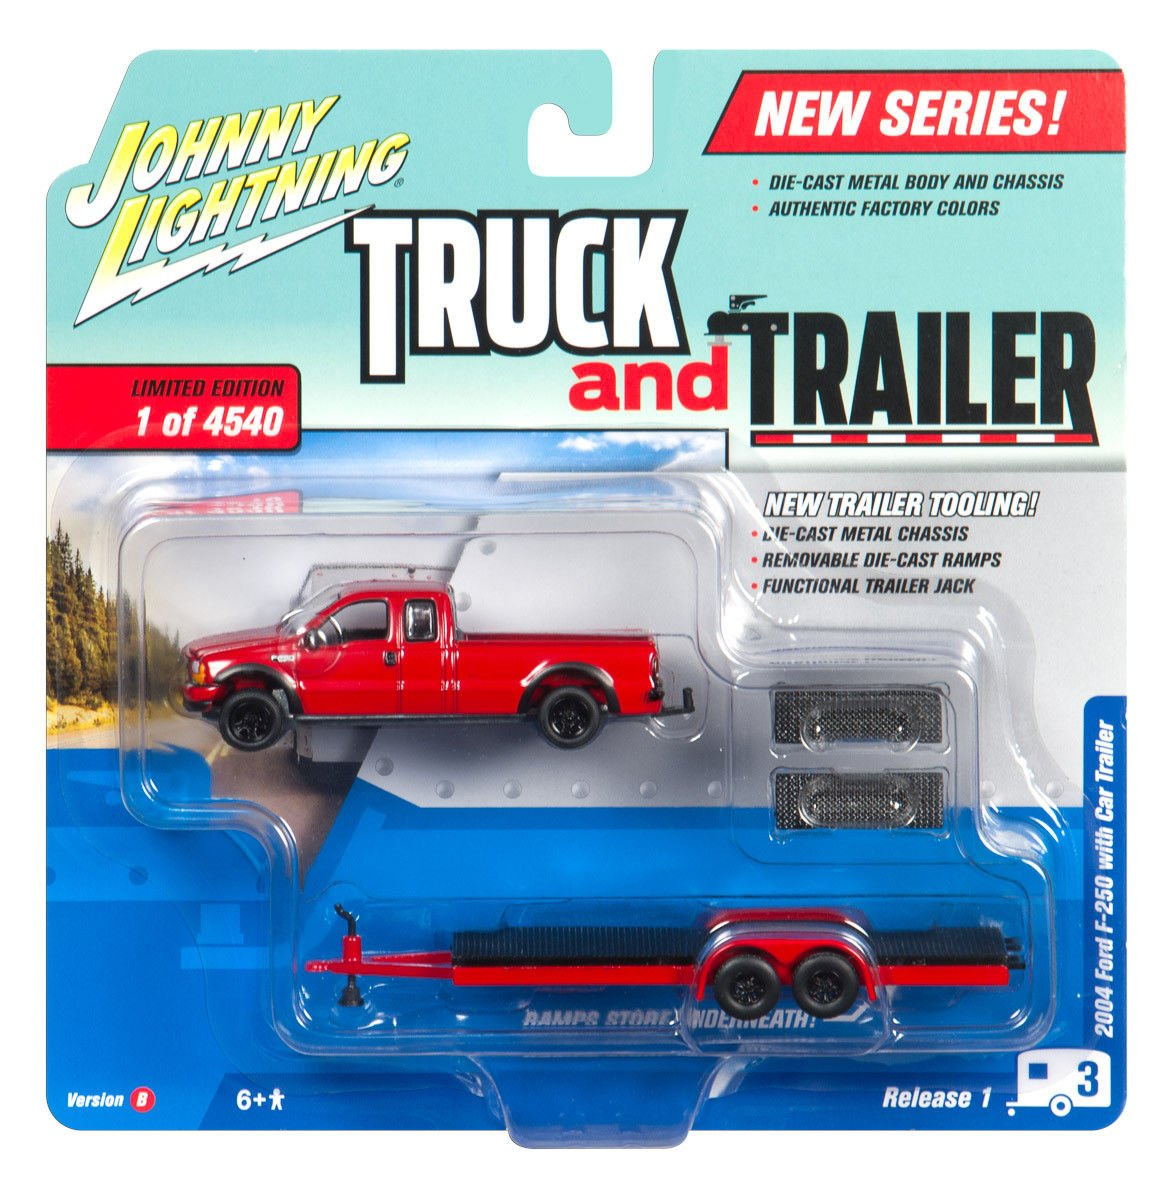 New 164 Auto World Johnny Lightning Truck Trailer Ford F 250 Toy Collection Red 2004 Flatbed Diecast Model Car By Toys